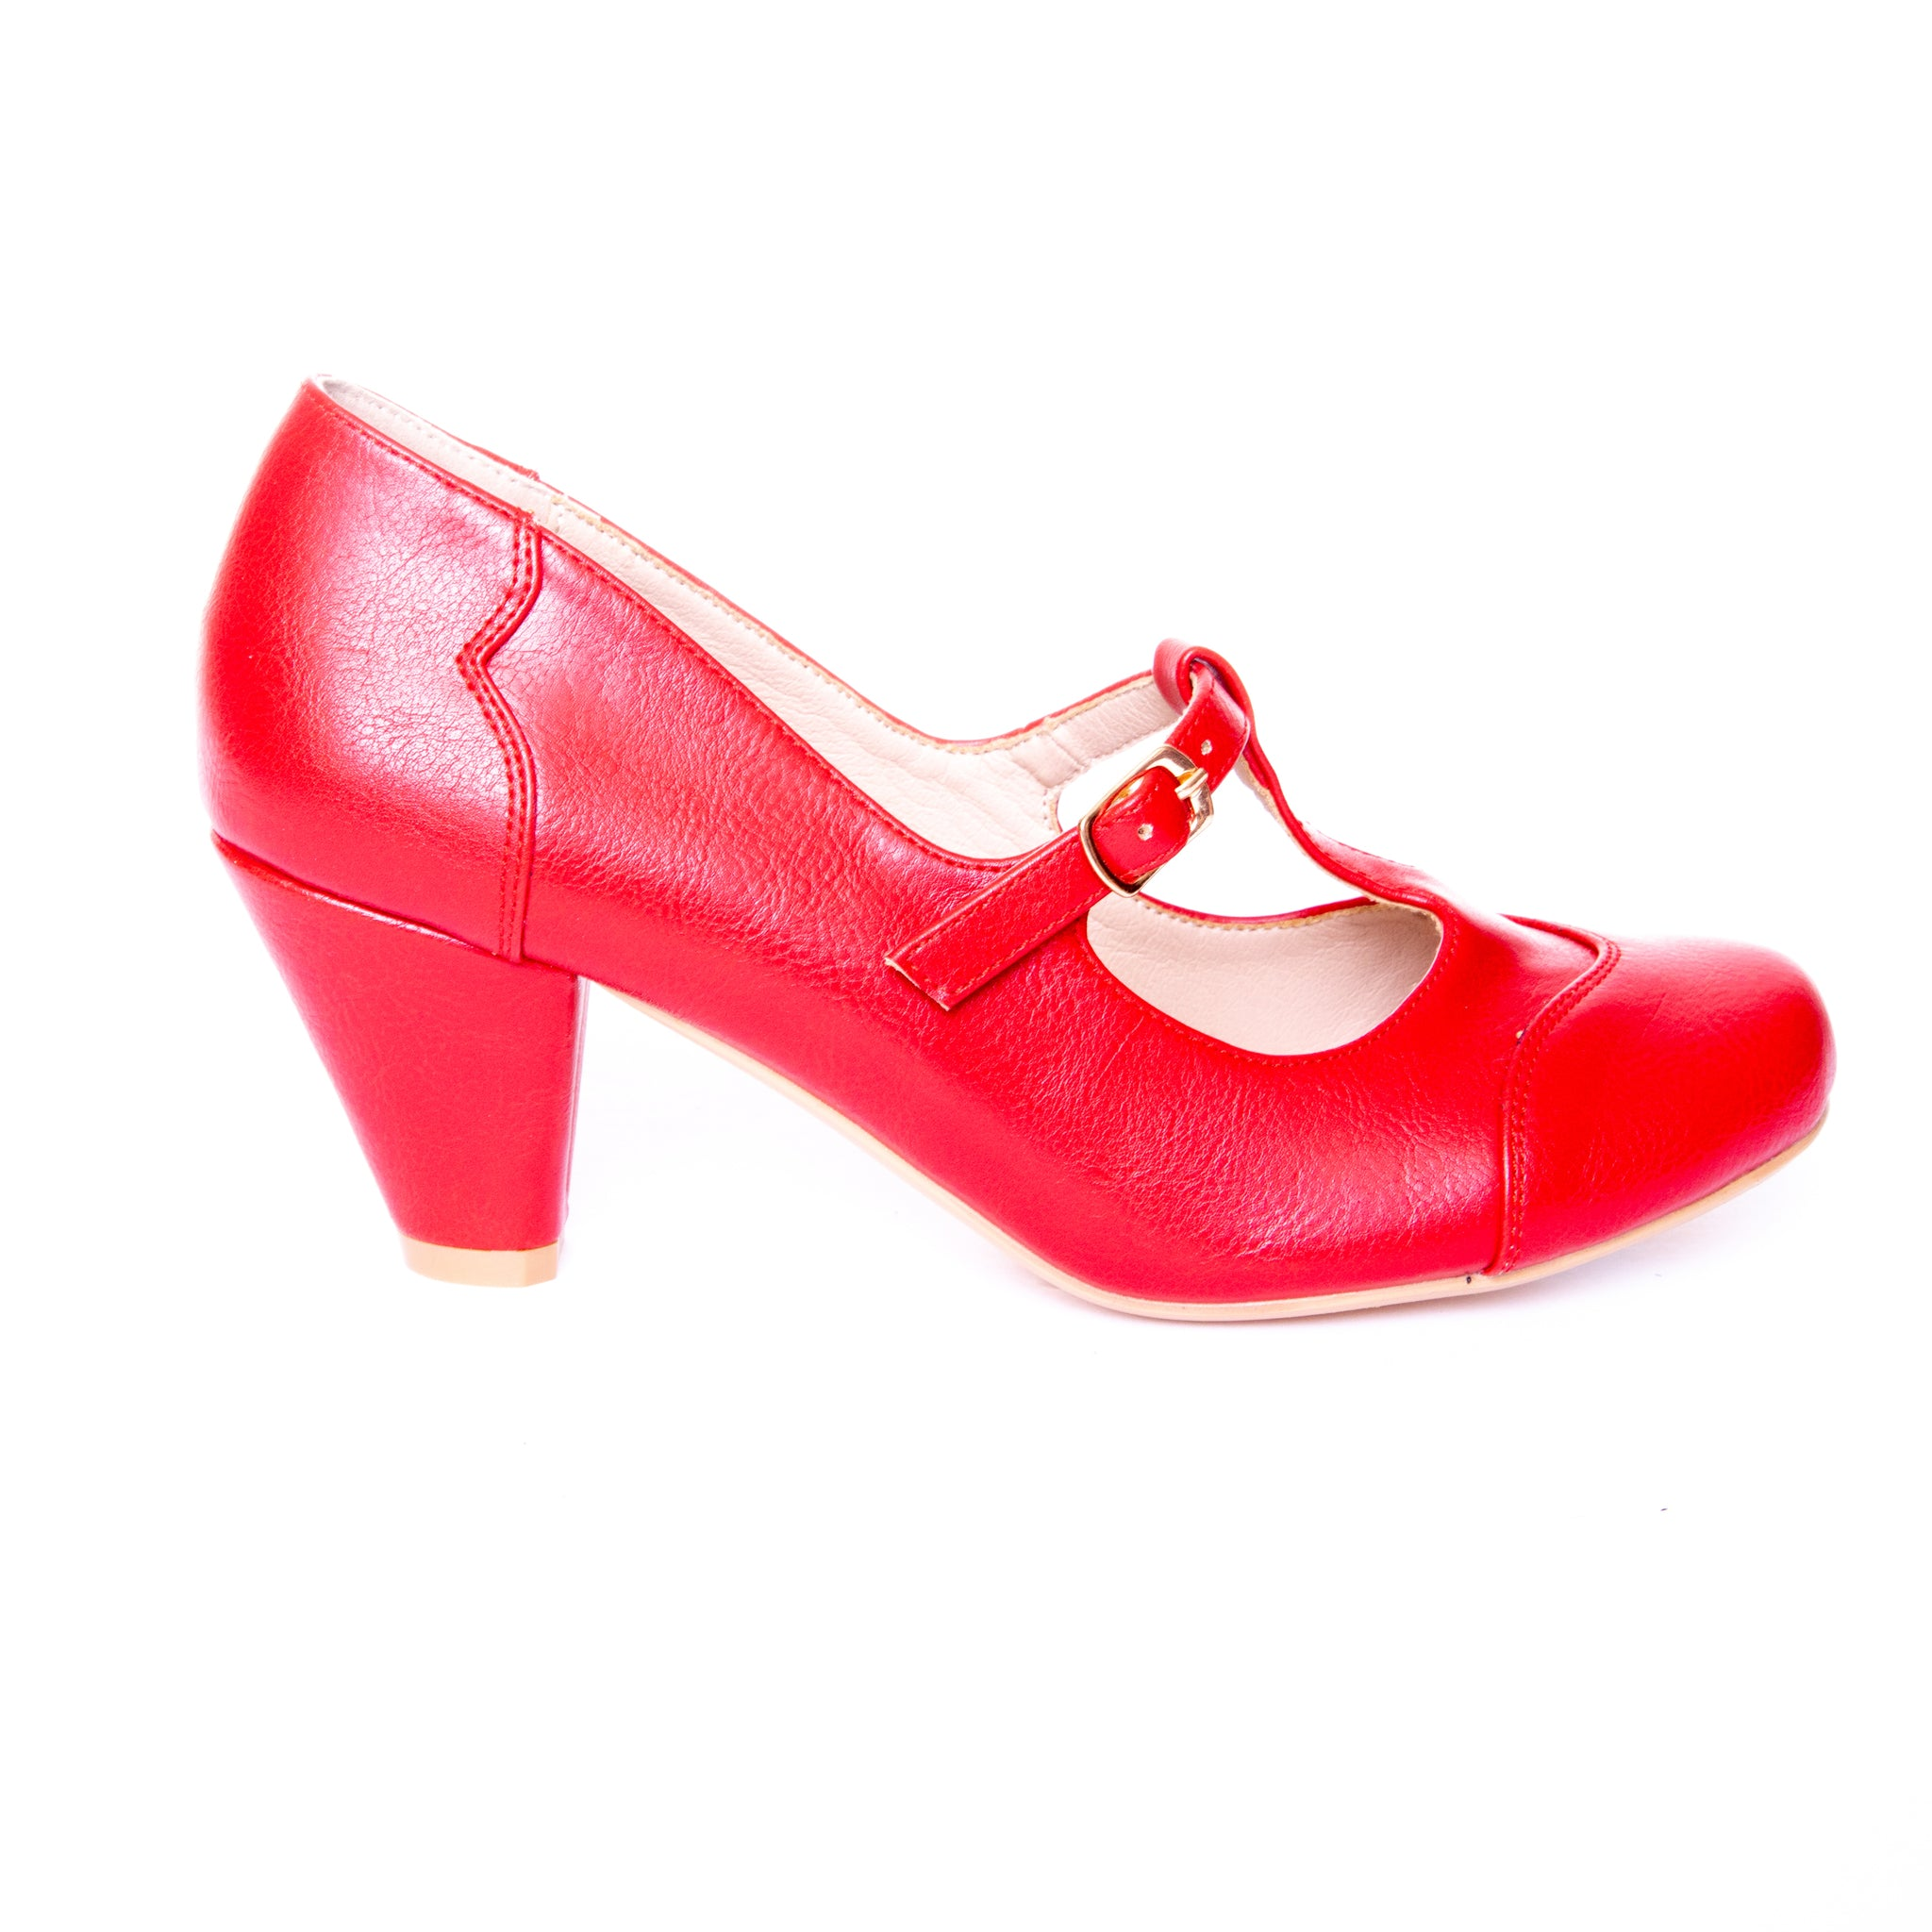 Alexa by Dolce Nome | Mary Jane T-Strap Pumps in Red (pair view)